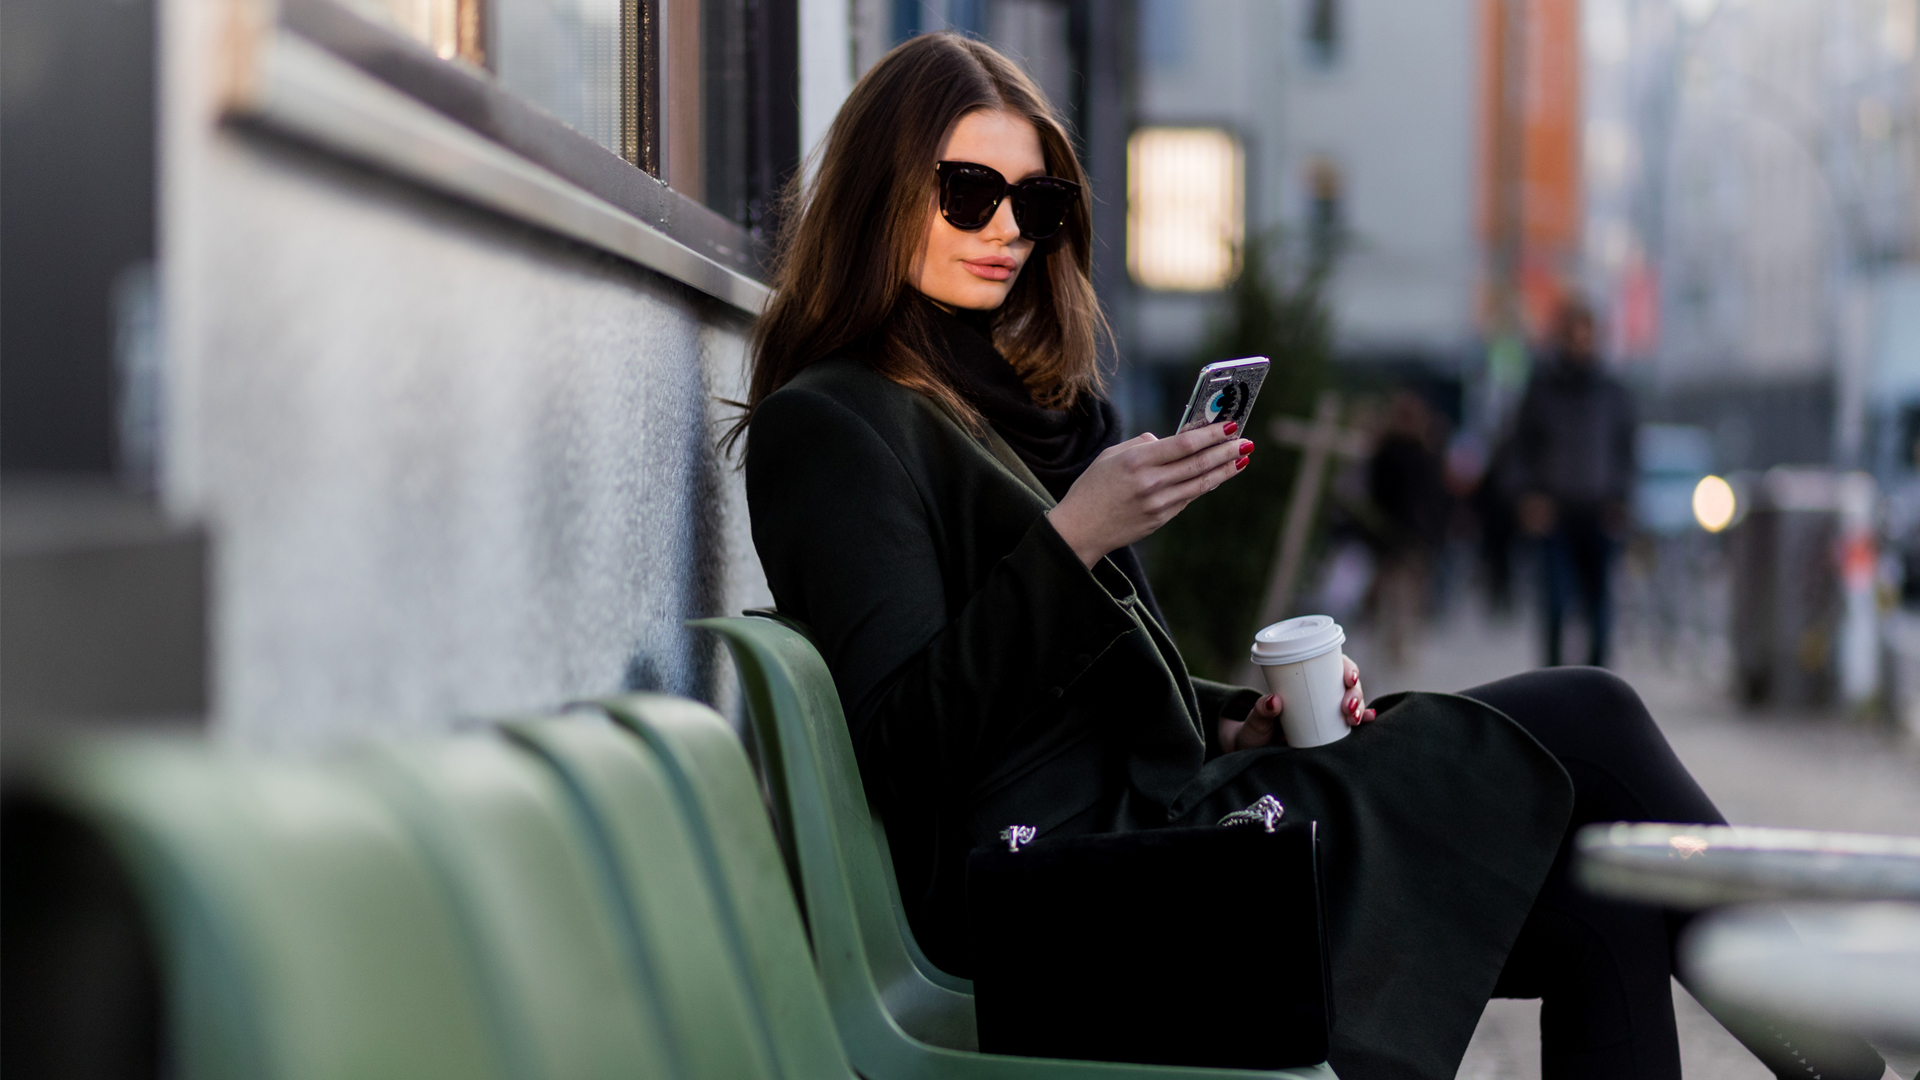 Single Woman on Bench